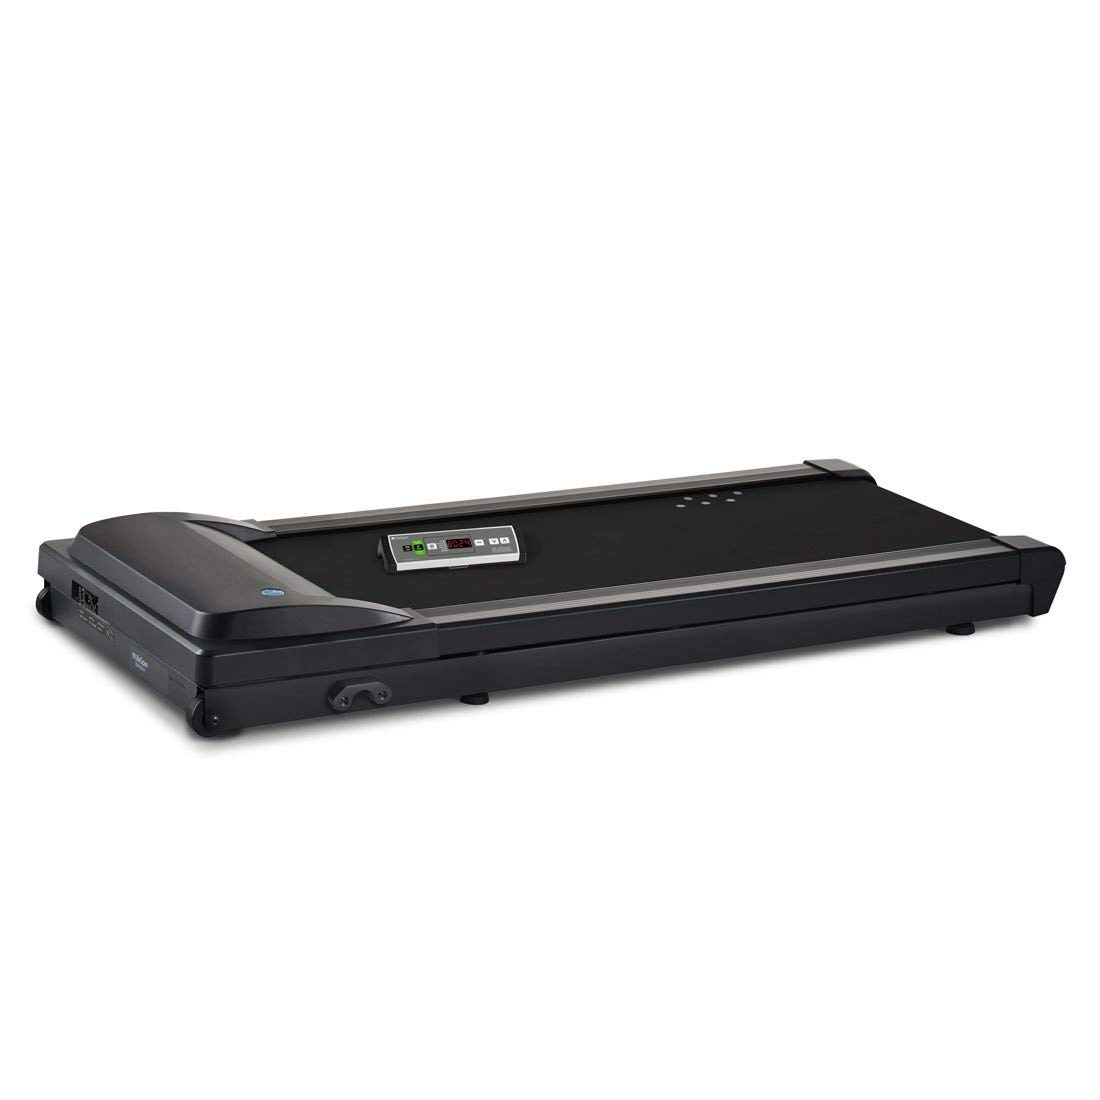 lifespan fitness TR1200-DT3 under desk treadmill